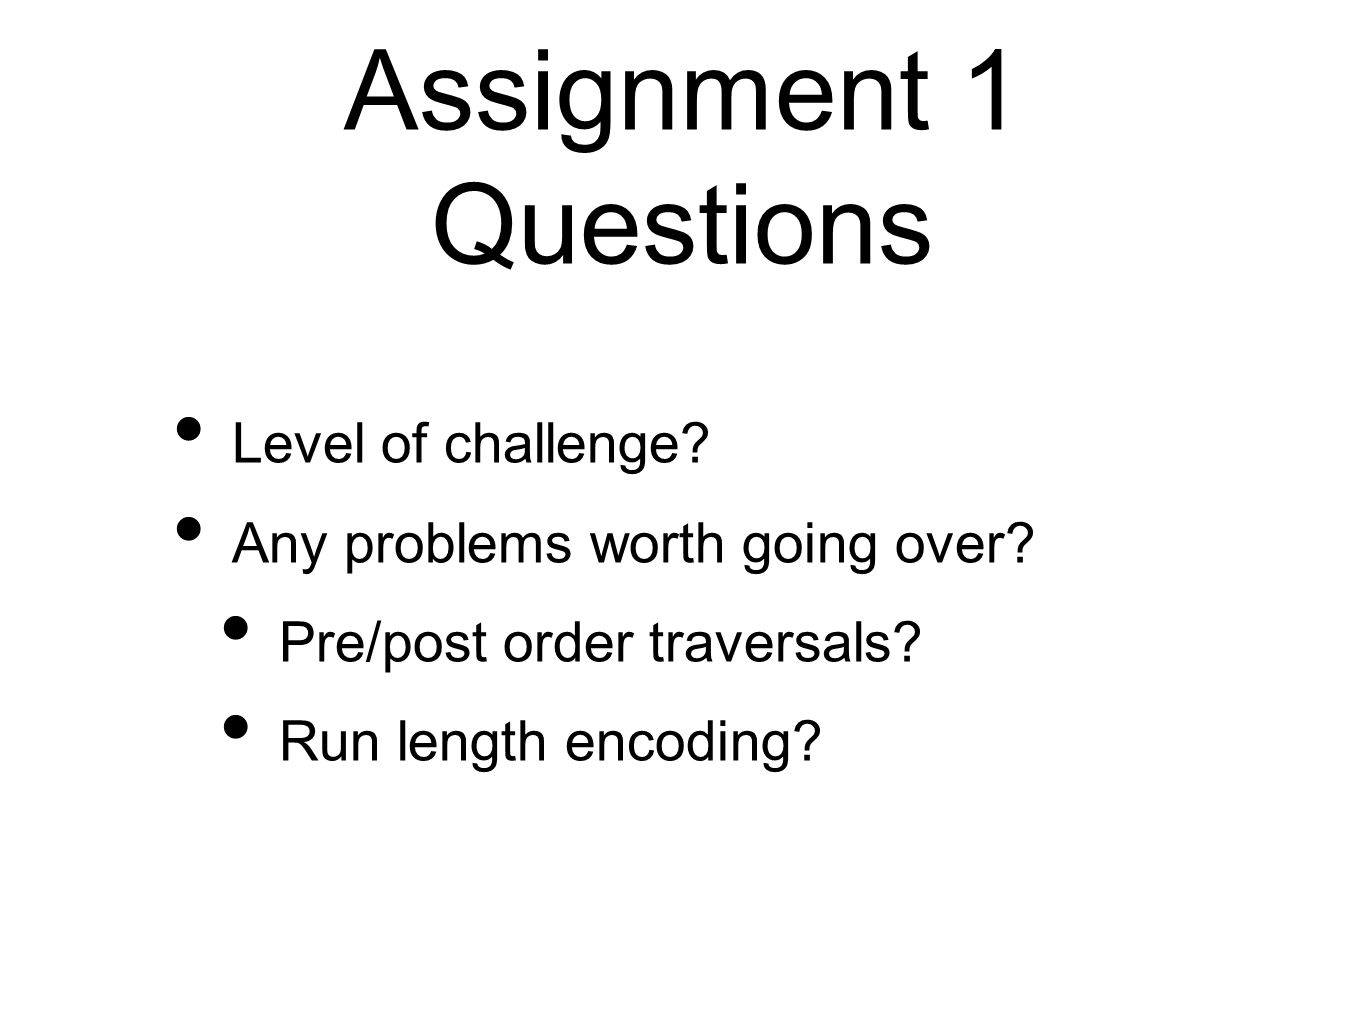 Assignment 1 Questions Level of challenge? Any problems worth going over? Pre/post order traversals? Run length encoding?